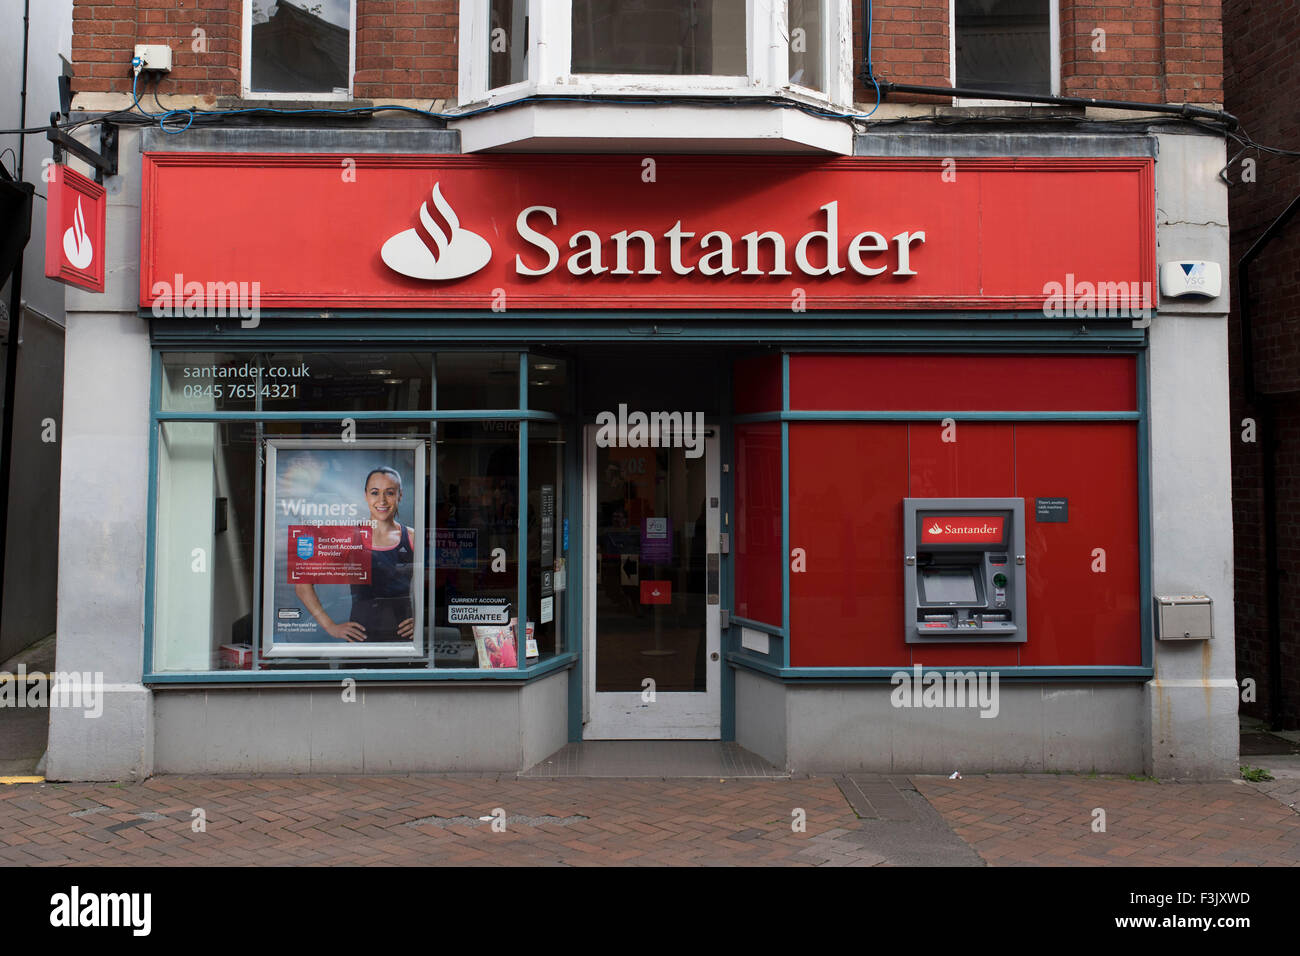 A Santander bank on the high street. - Stock Image